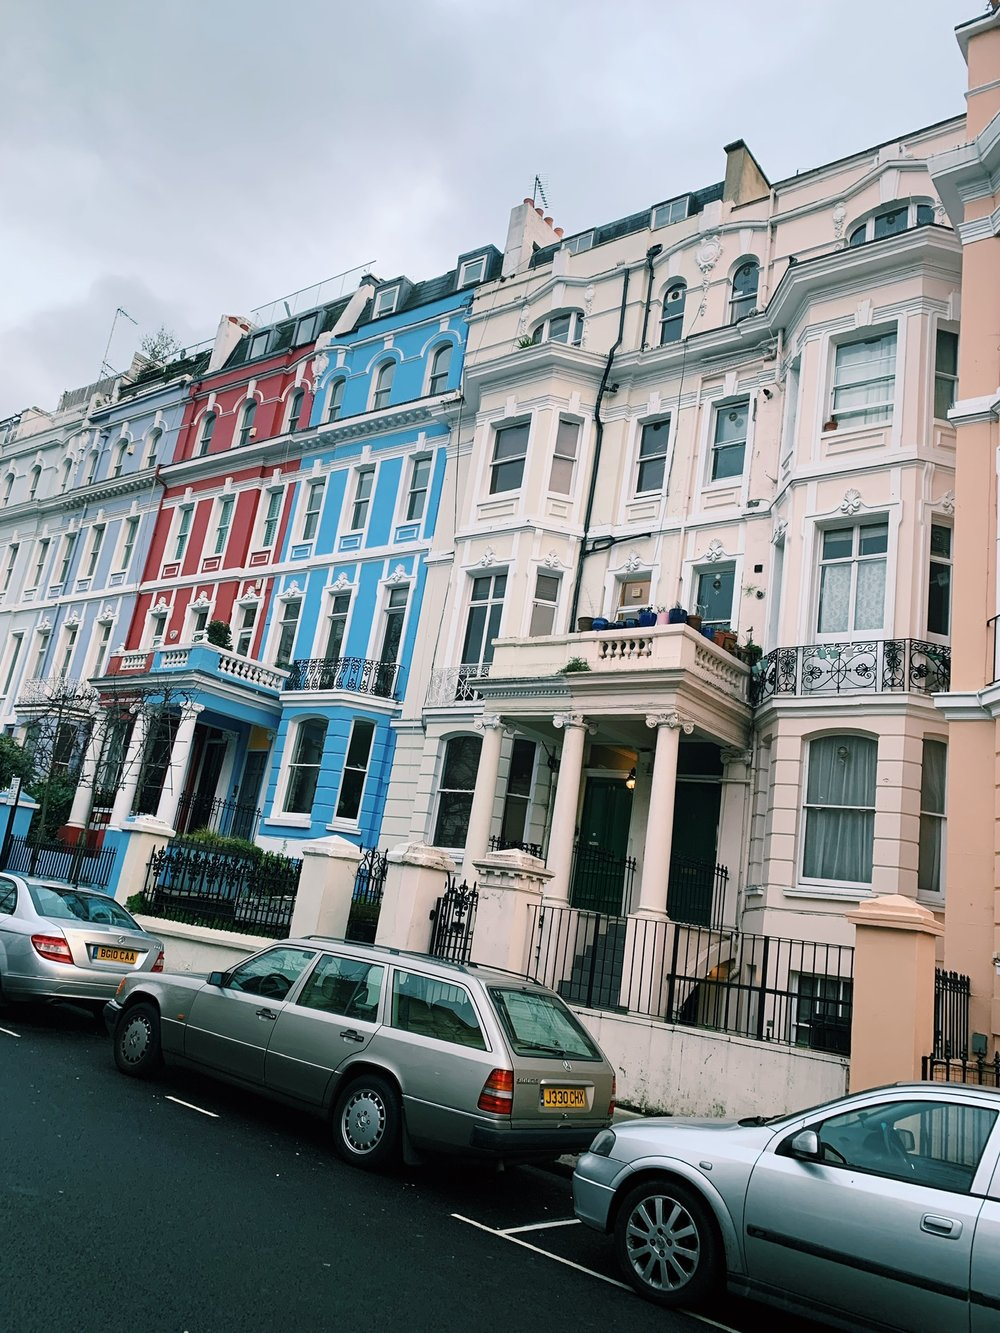 Notting Hill.jpeg